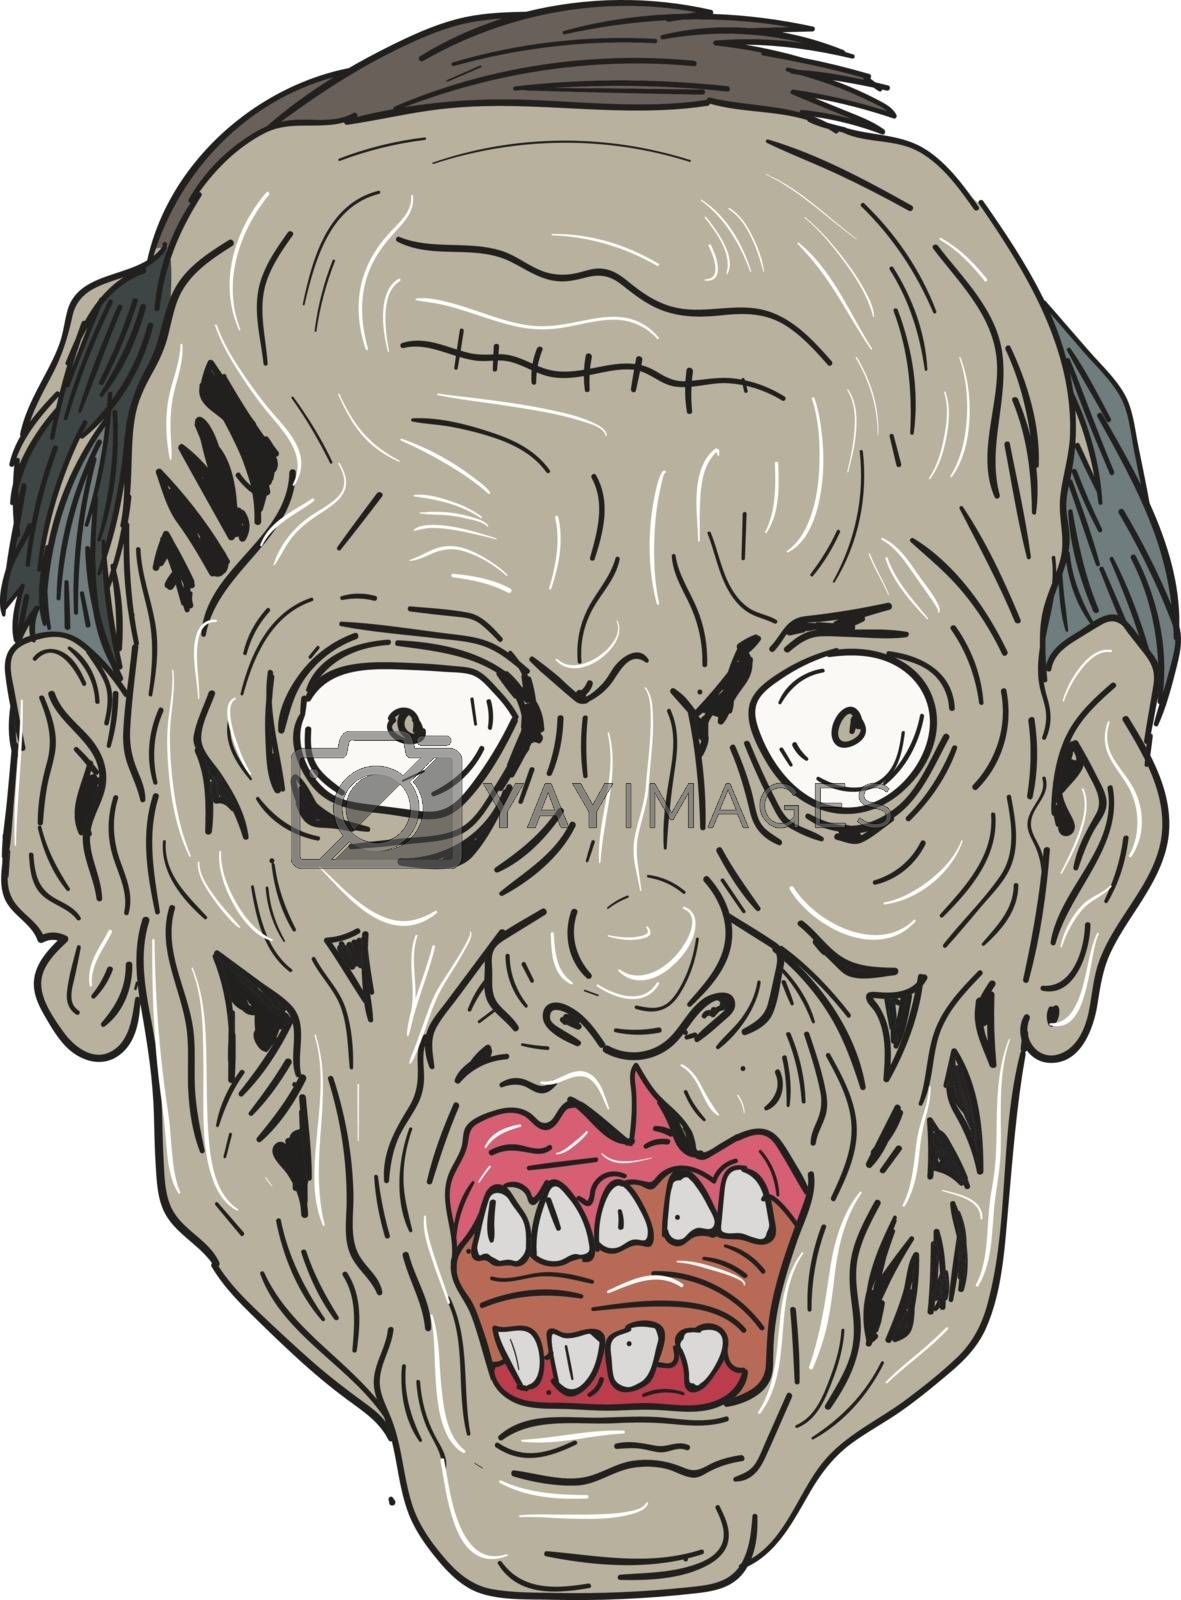 Drawing sketch style illustration of a zombie skull head viewed from front set on isolated white background.